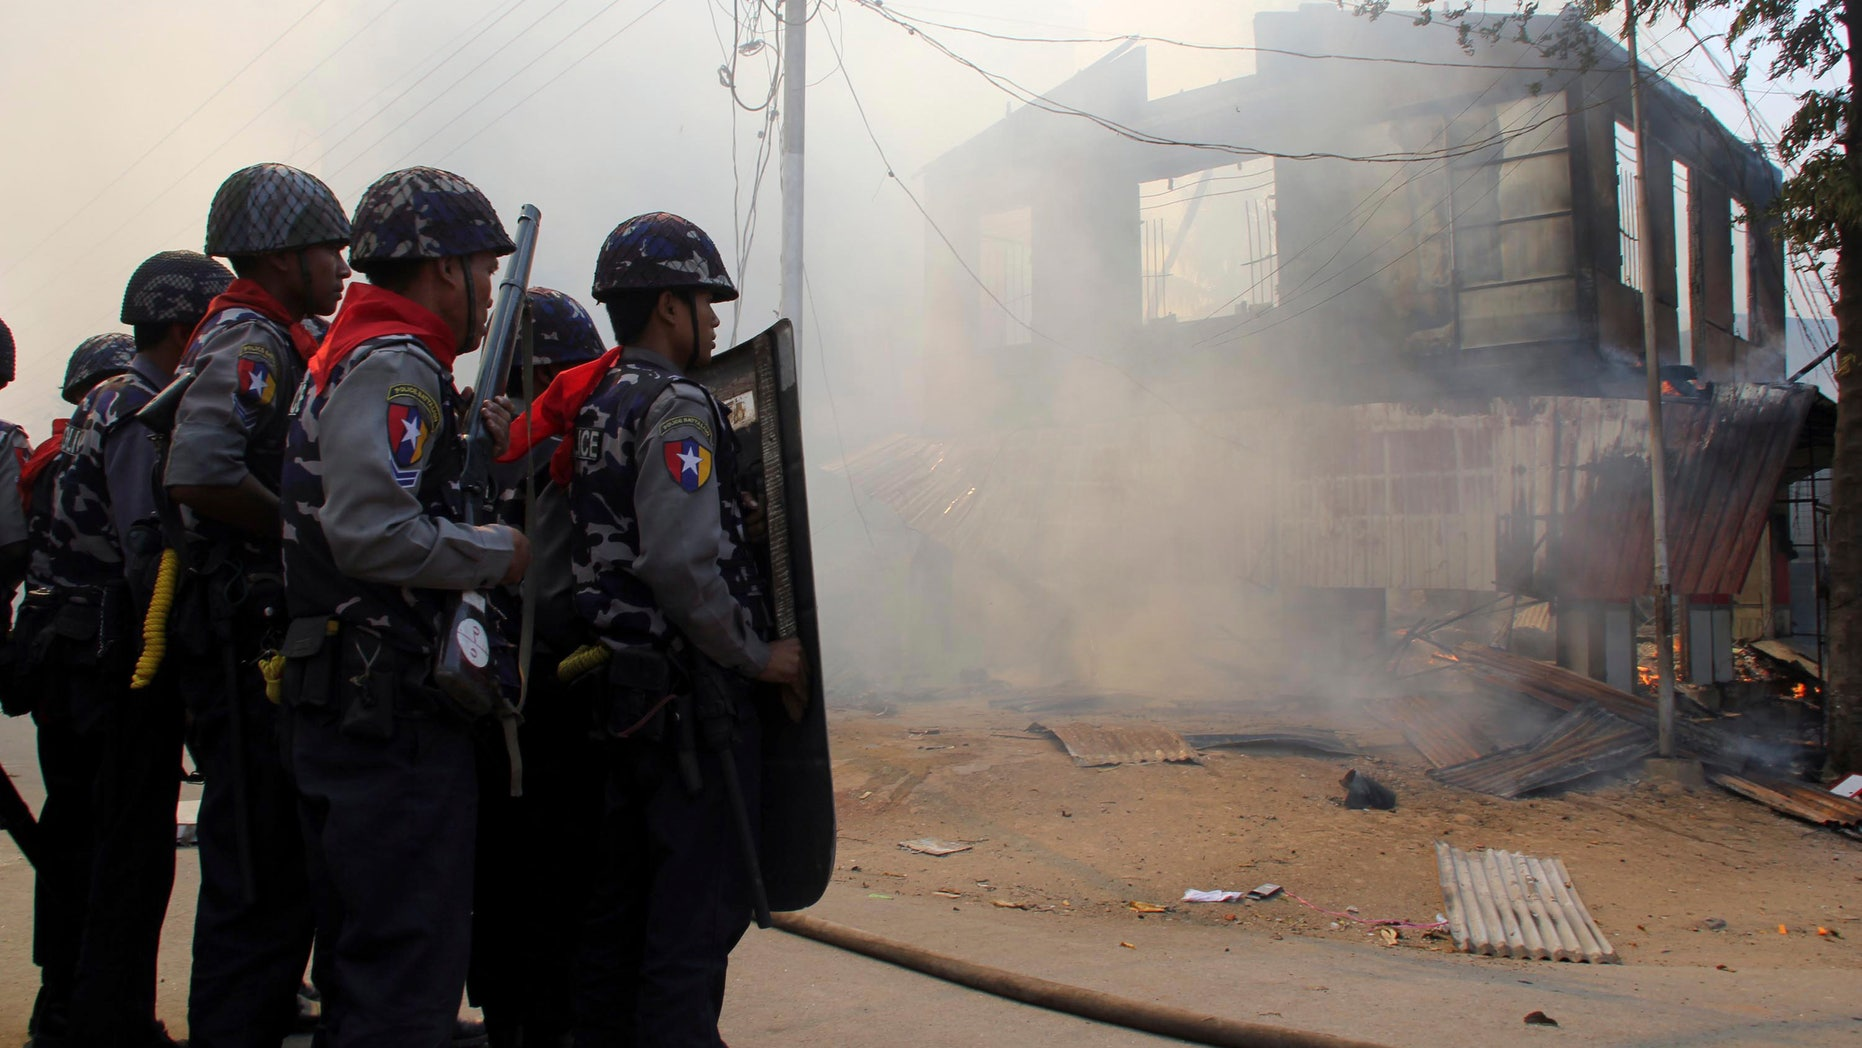 March. 21, 2013: This photo shows armed Burma police officers provide security around a smoldering building following ethnic unrest between Buddhists and Muslims in Meikhtila, Mandalay division, about 340 miles north of Yangon, Burma.